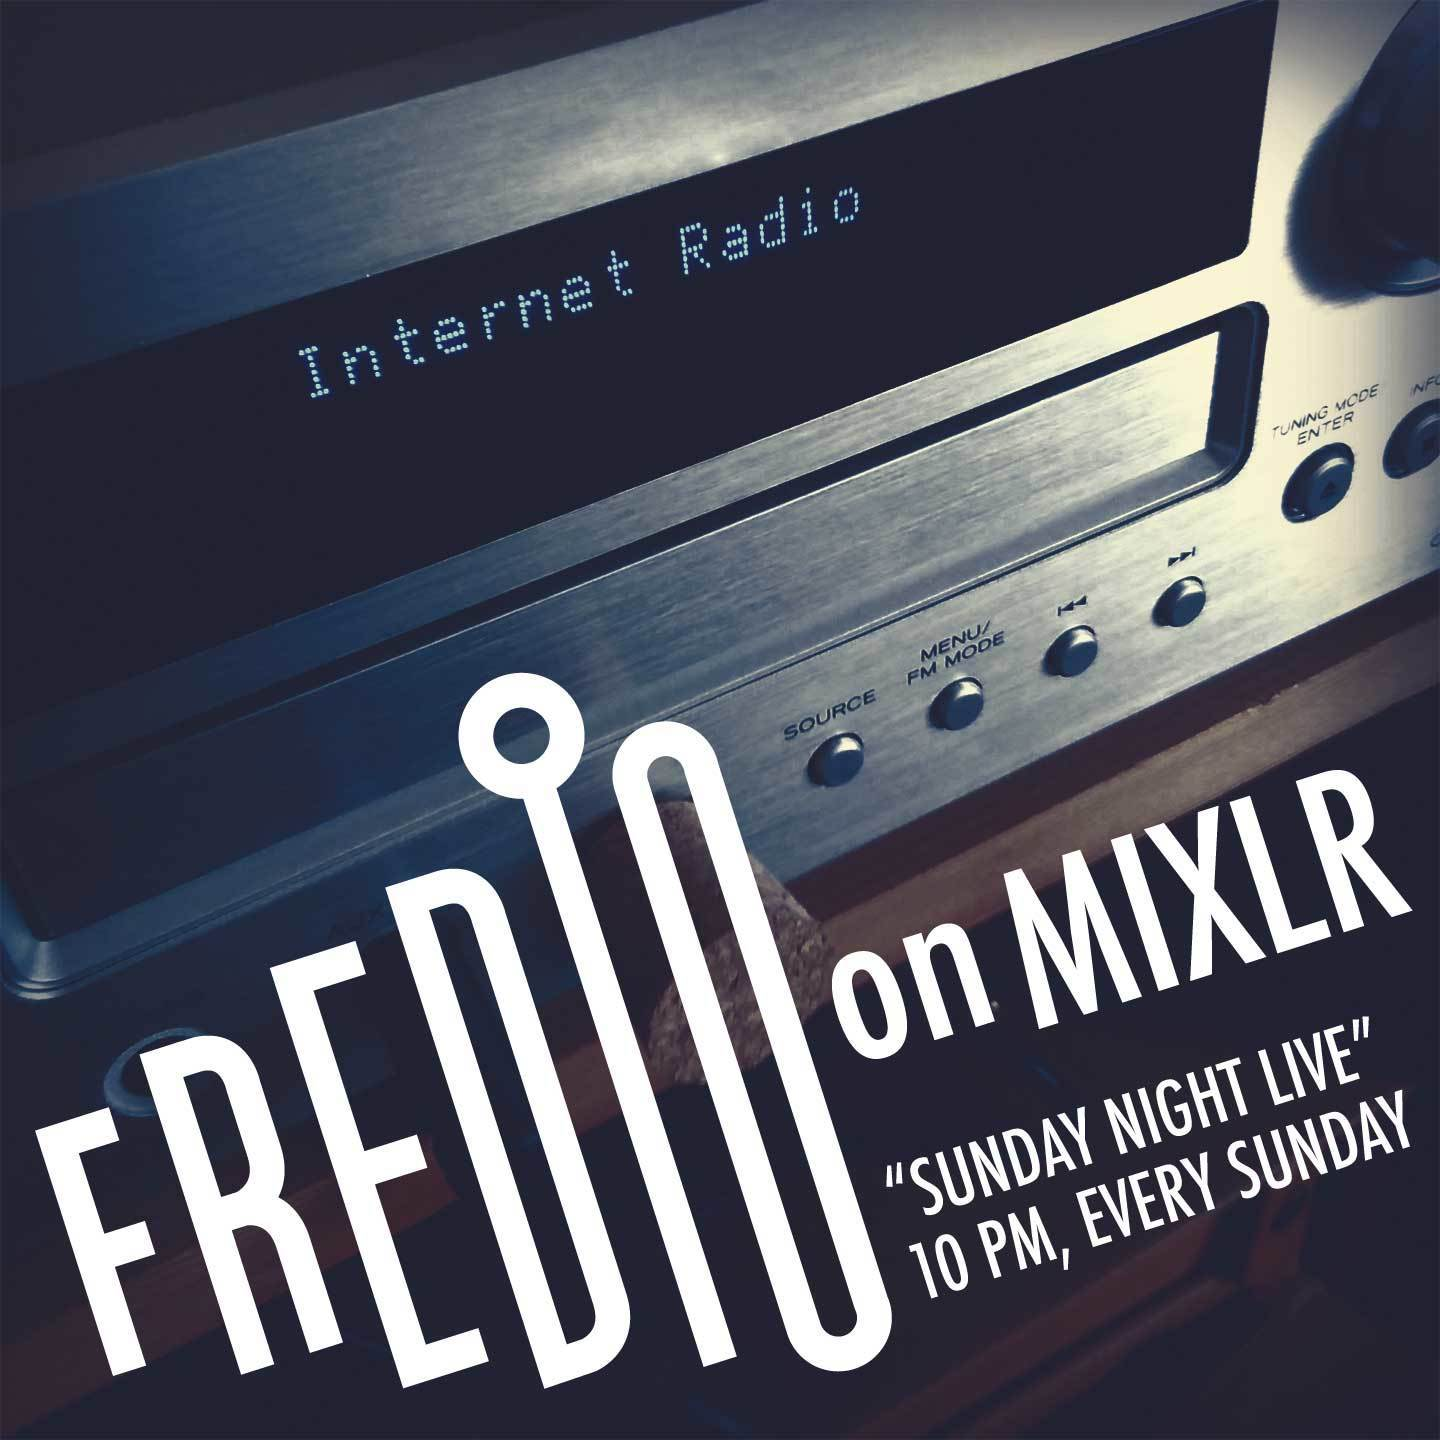 Fredio on Mixlr